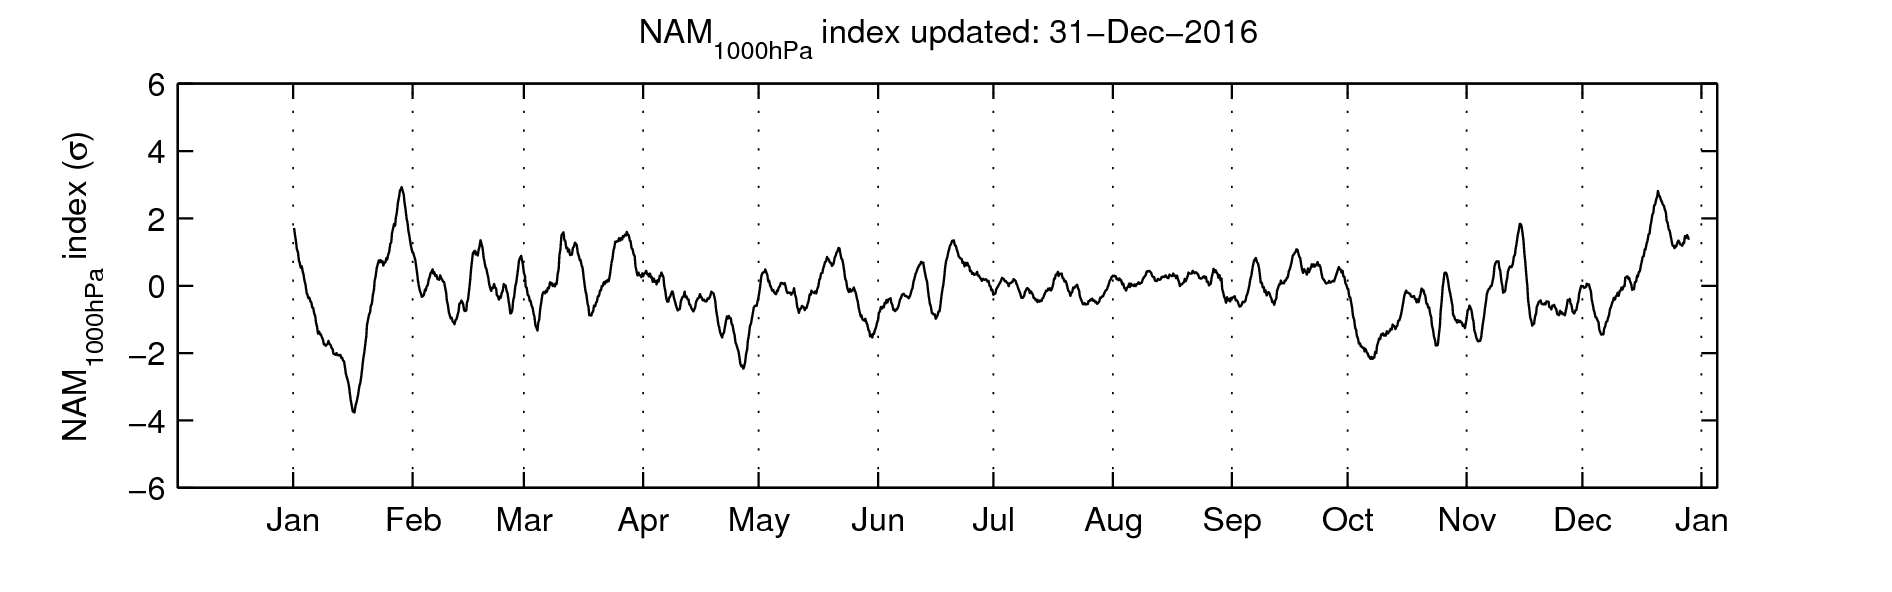 Northern Annular Mode (NAM) index at 1000 hPa